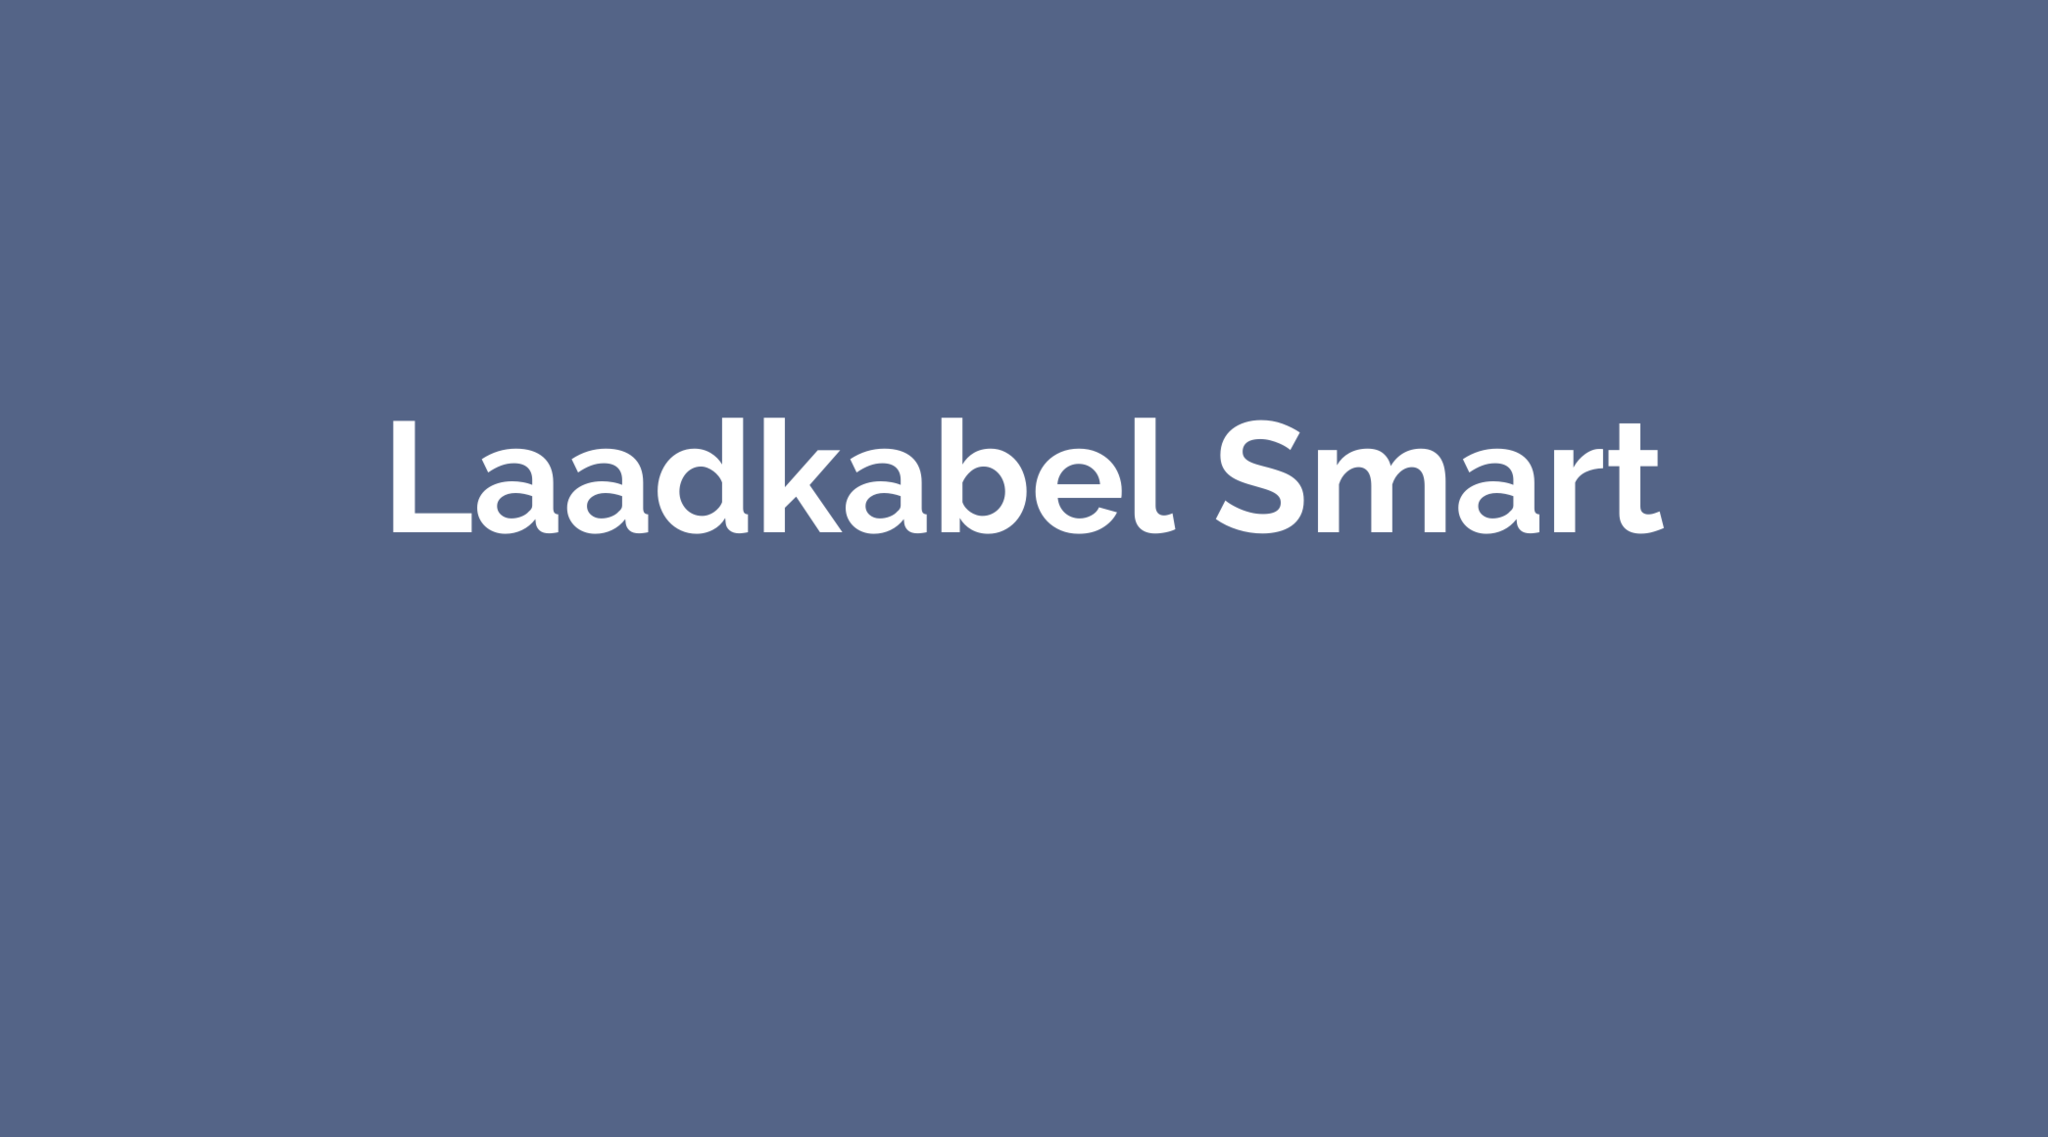 Laadkabel Smart